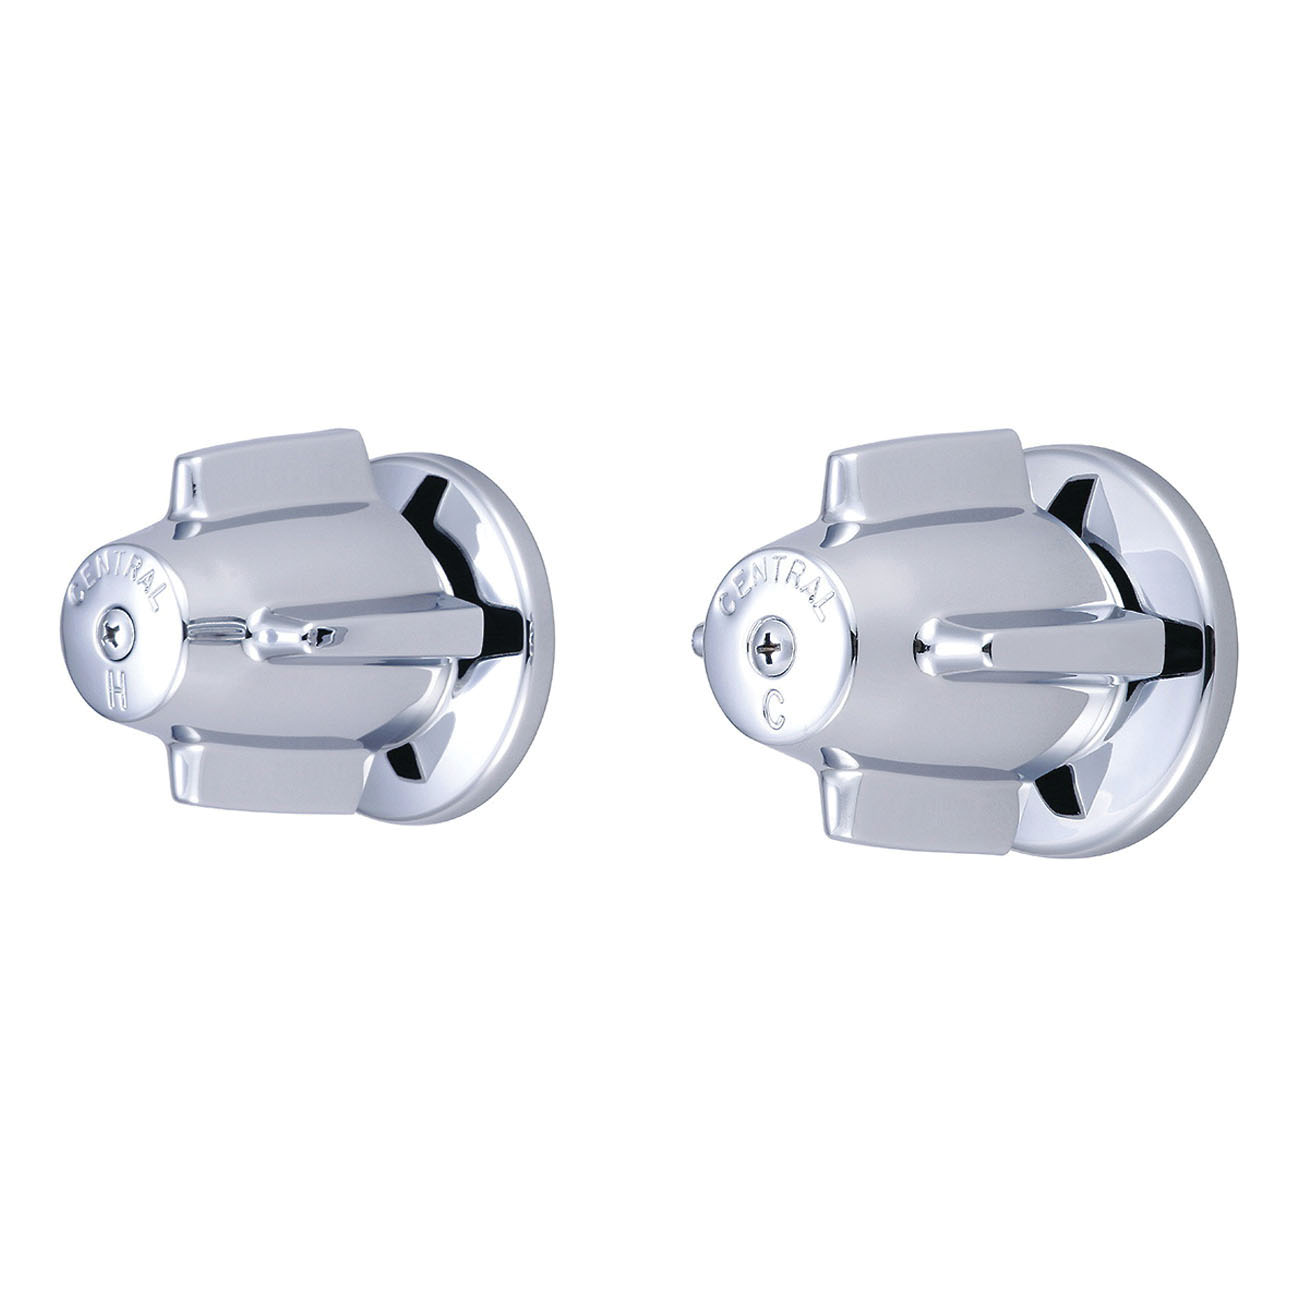 Central Brass 6056 Valve Set, 2.5 gpm Shower, Polished Chrome